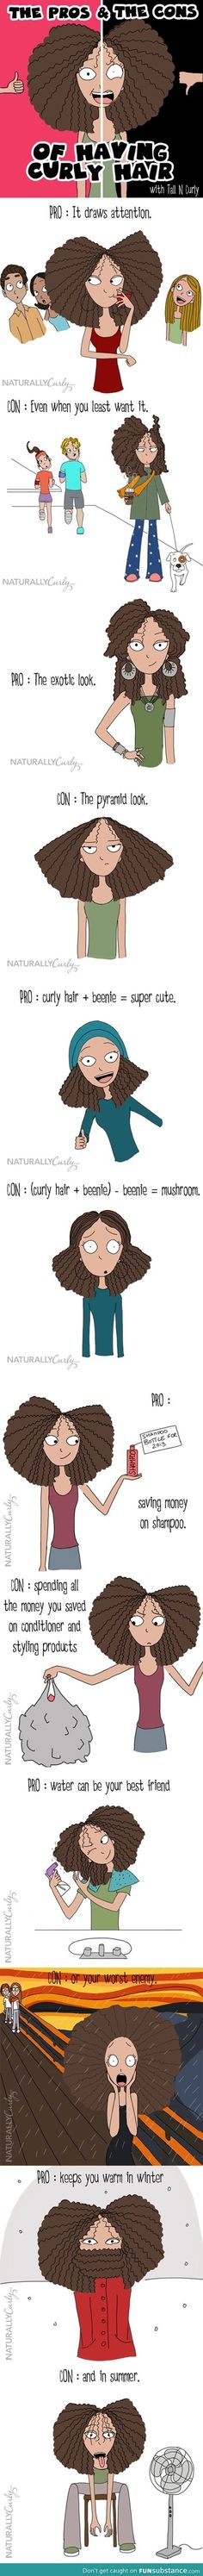 Having curly hair